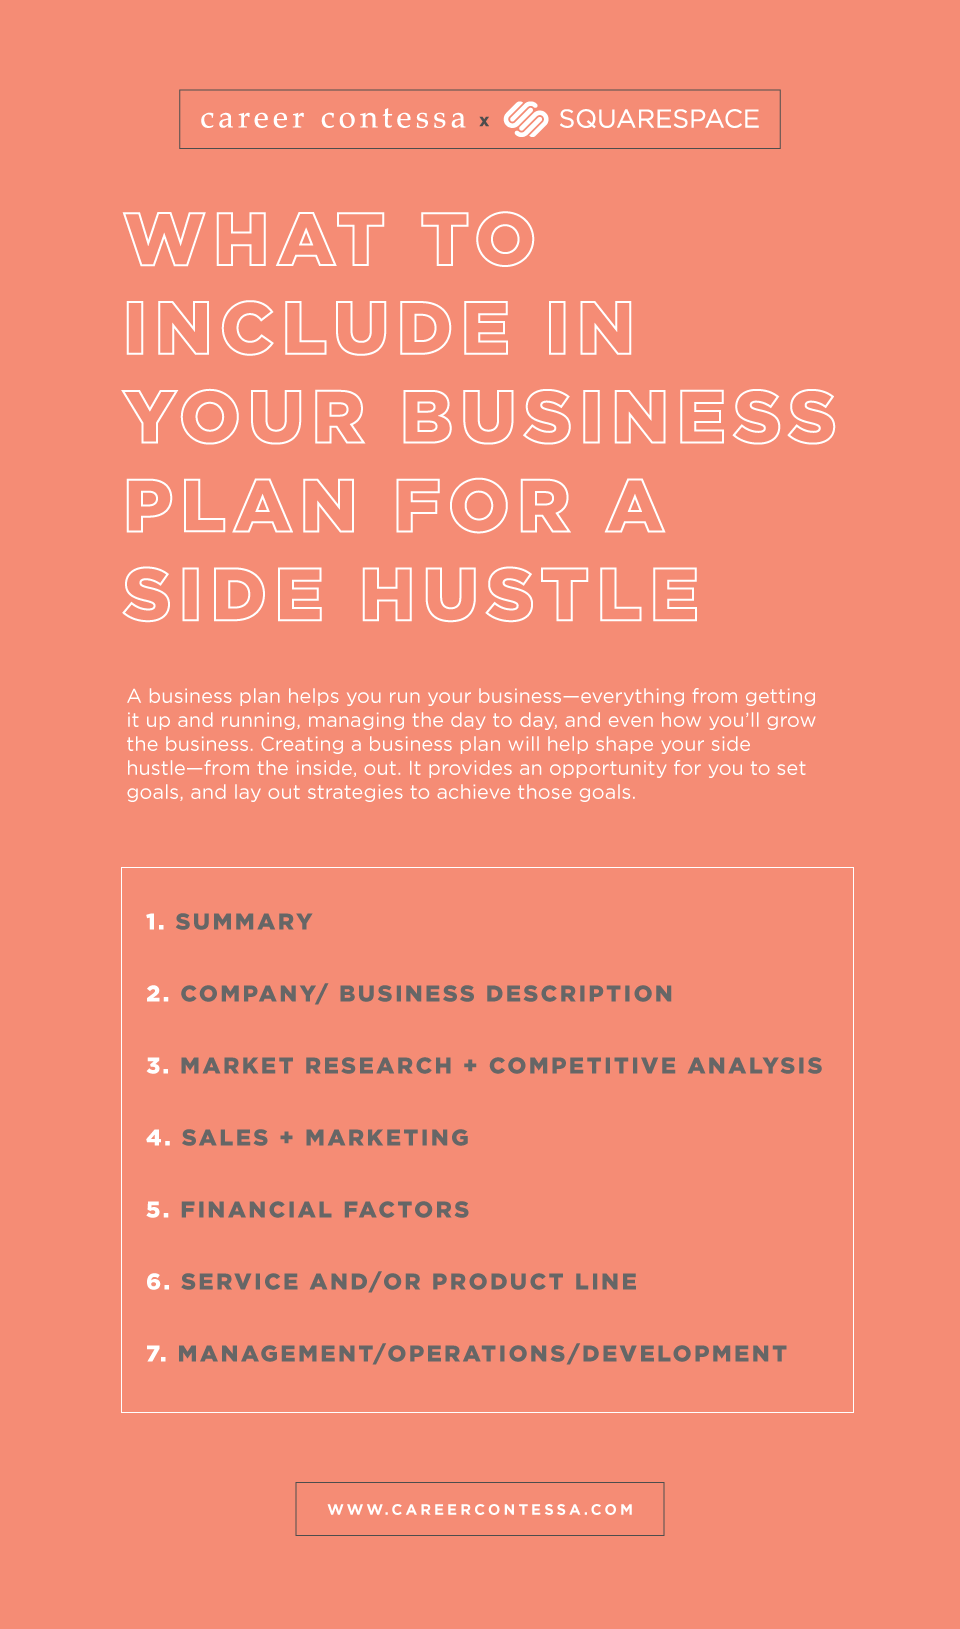 What to Include in Your Business Plan For a Side Hustle